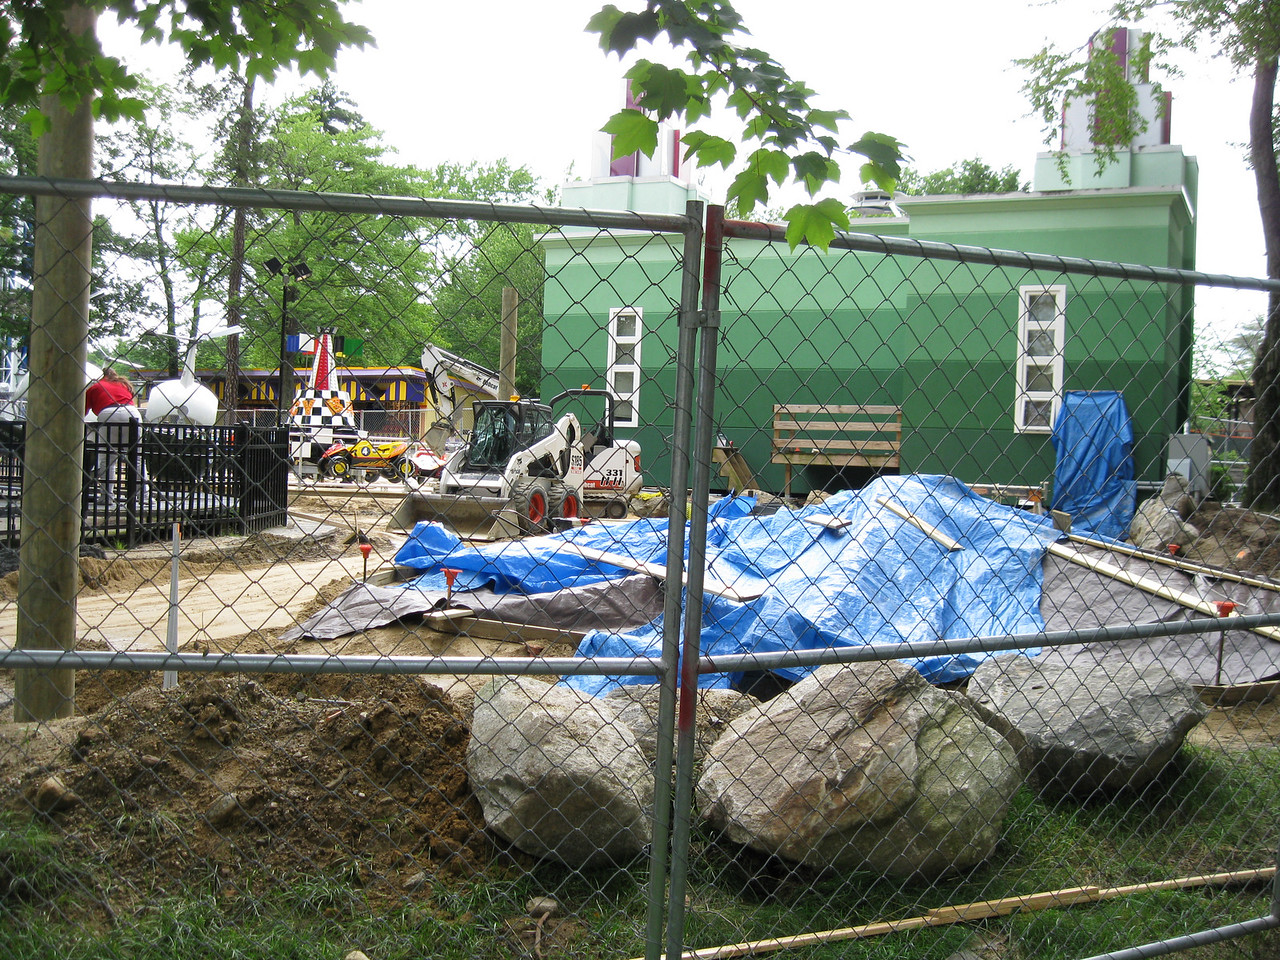 The two ride pads in back of Kiddieland were still under construction.